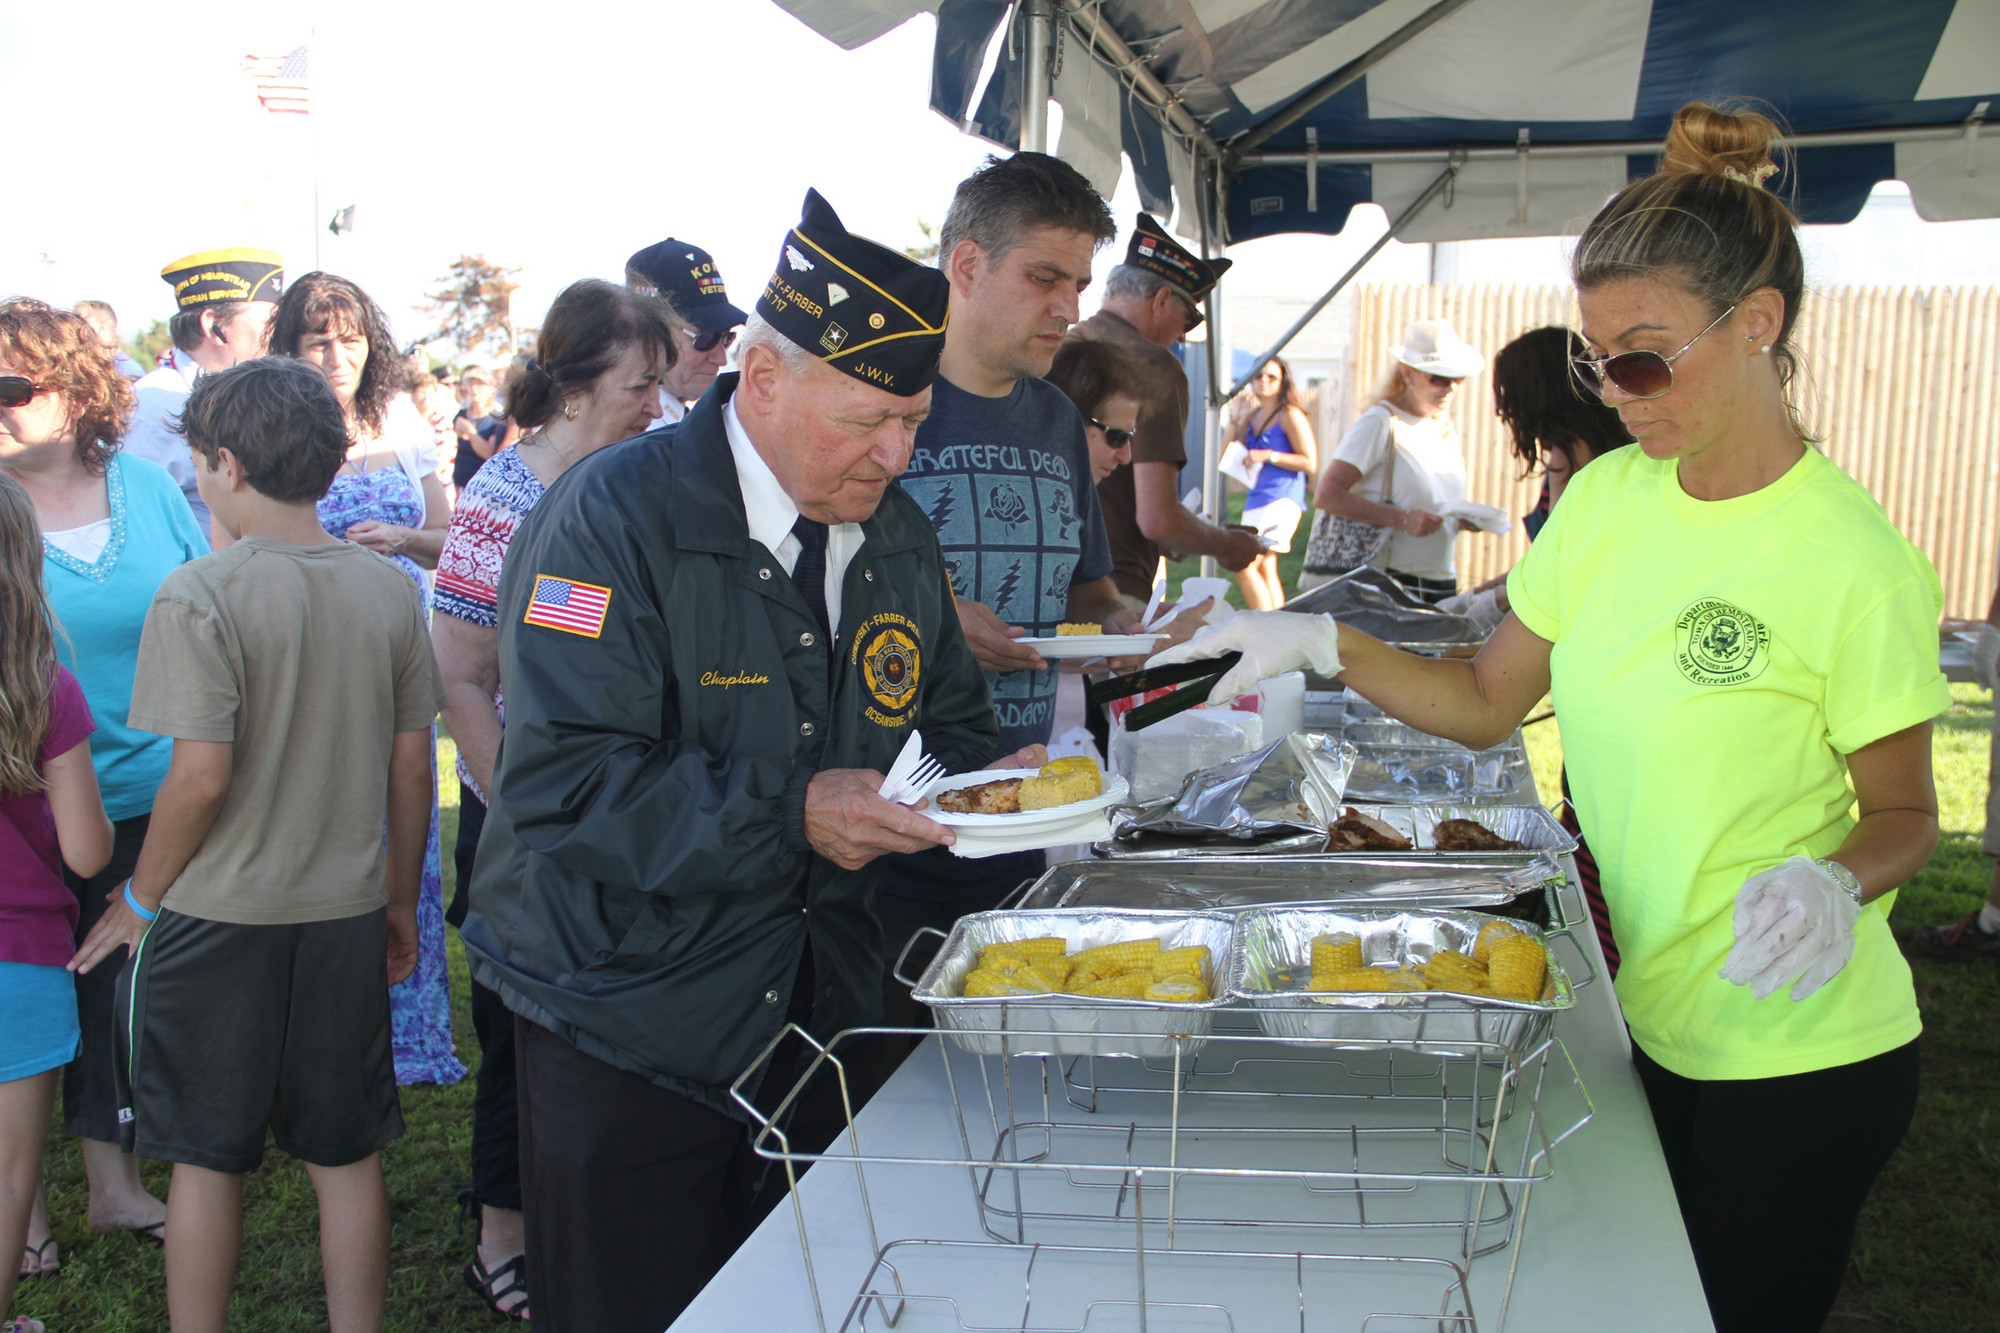 Chaplain Leonard Levine of Post 717 Oceanside, hits the buffet line.